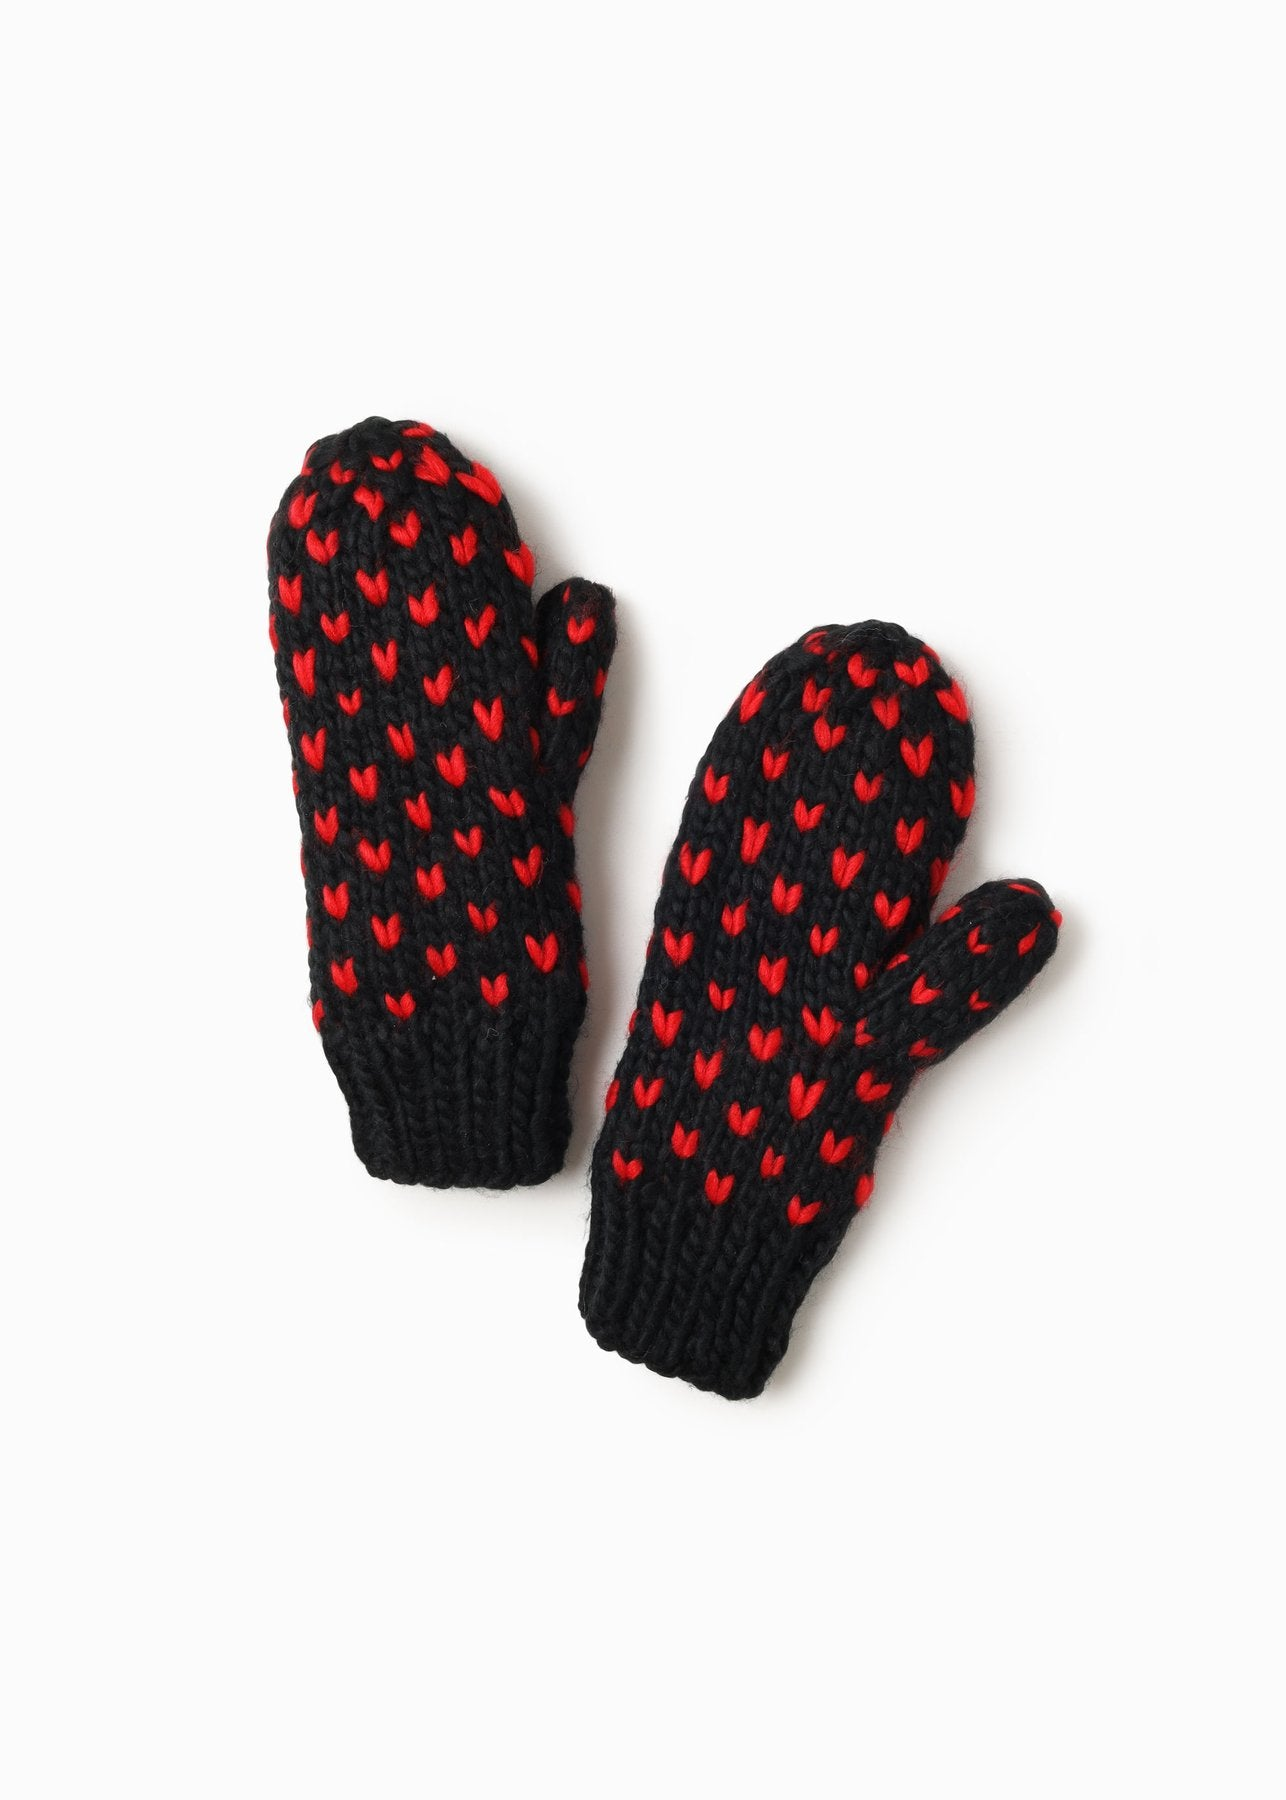 Little Heart Mittens in Black Combo